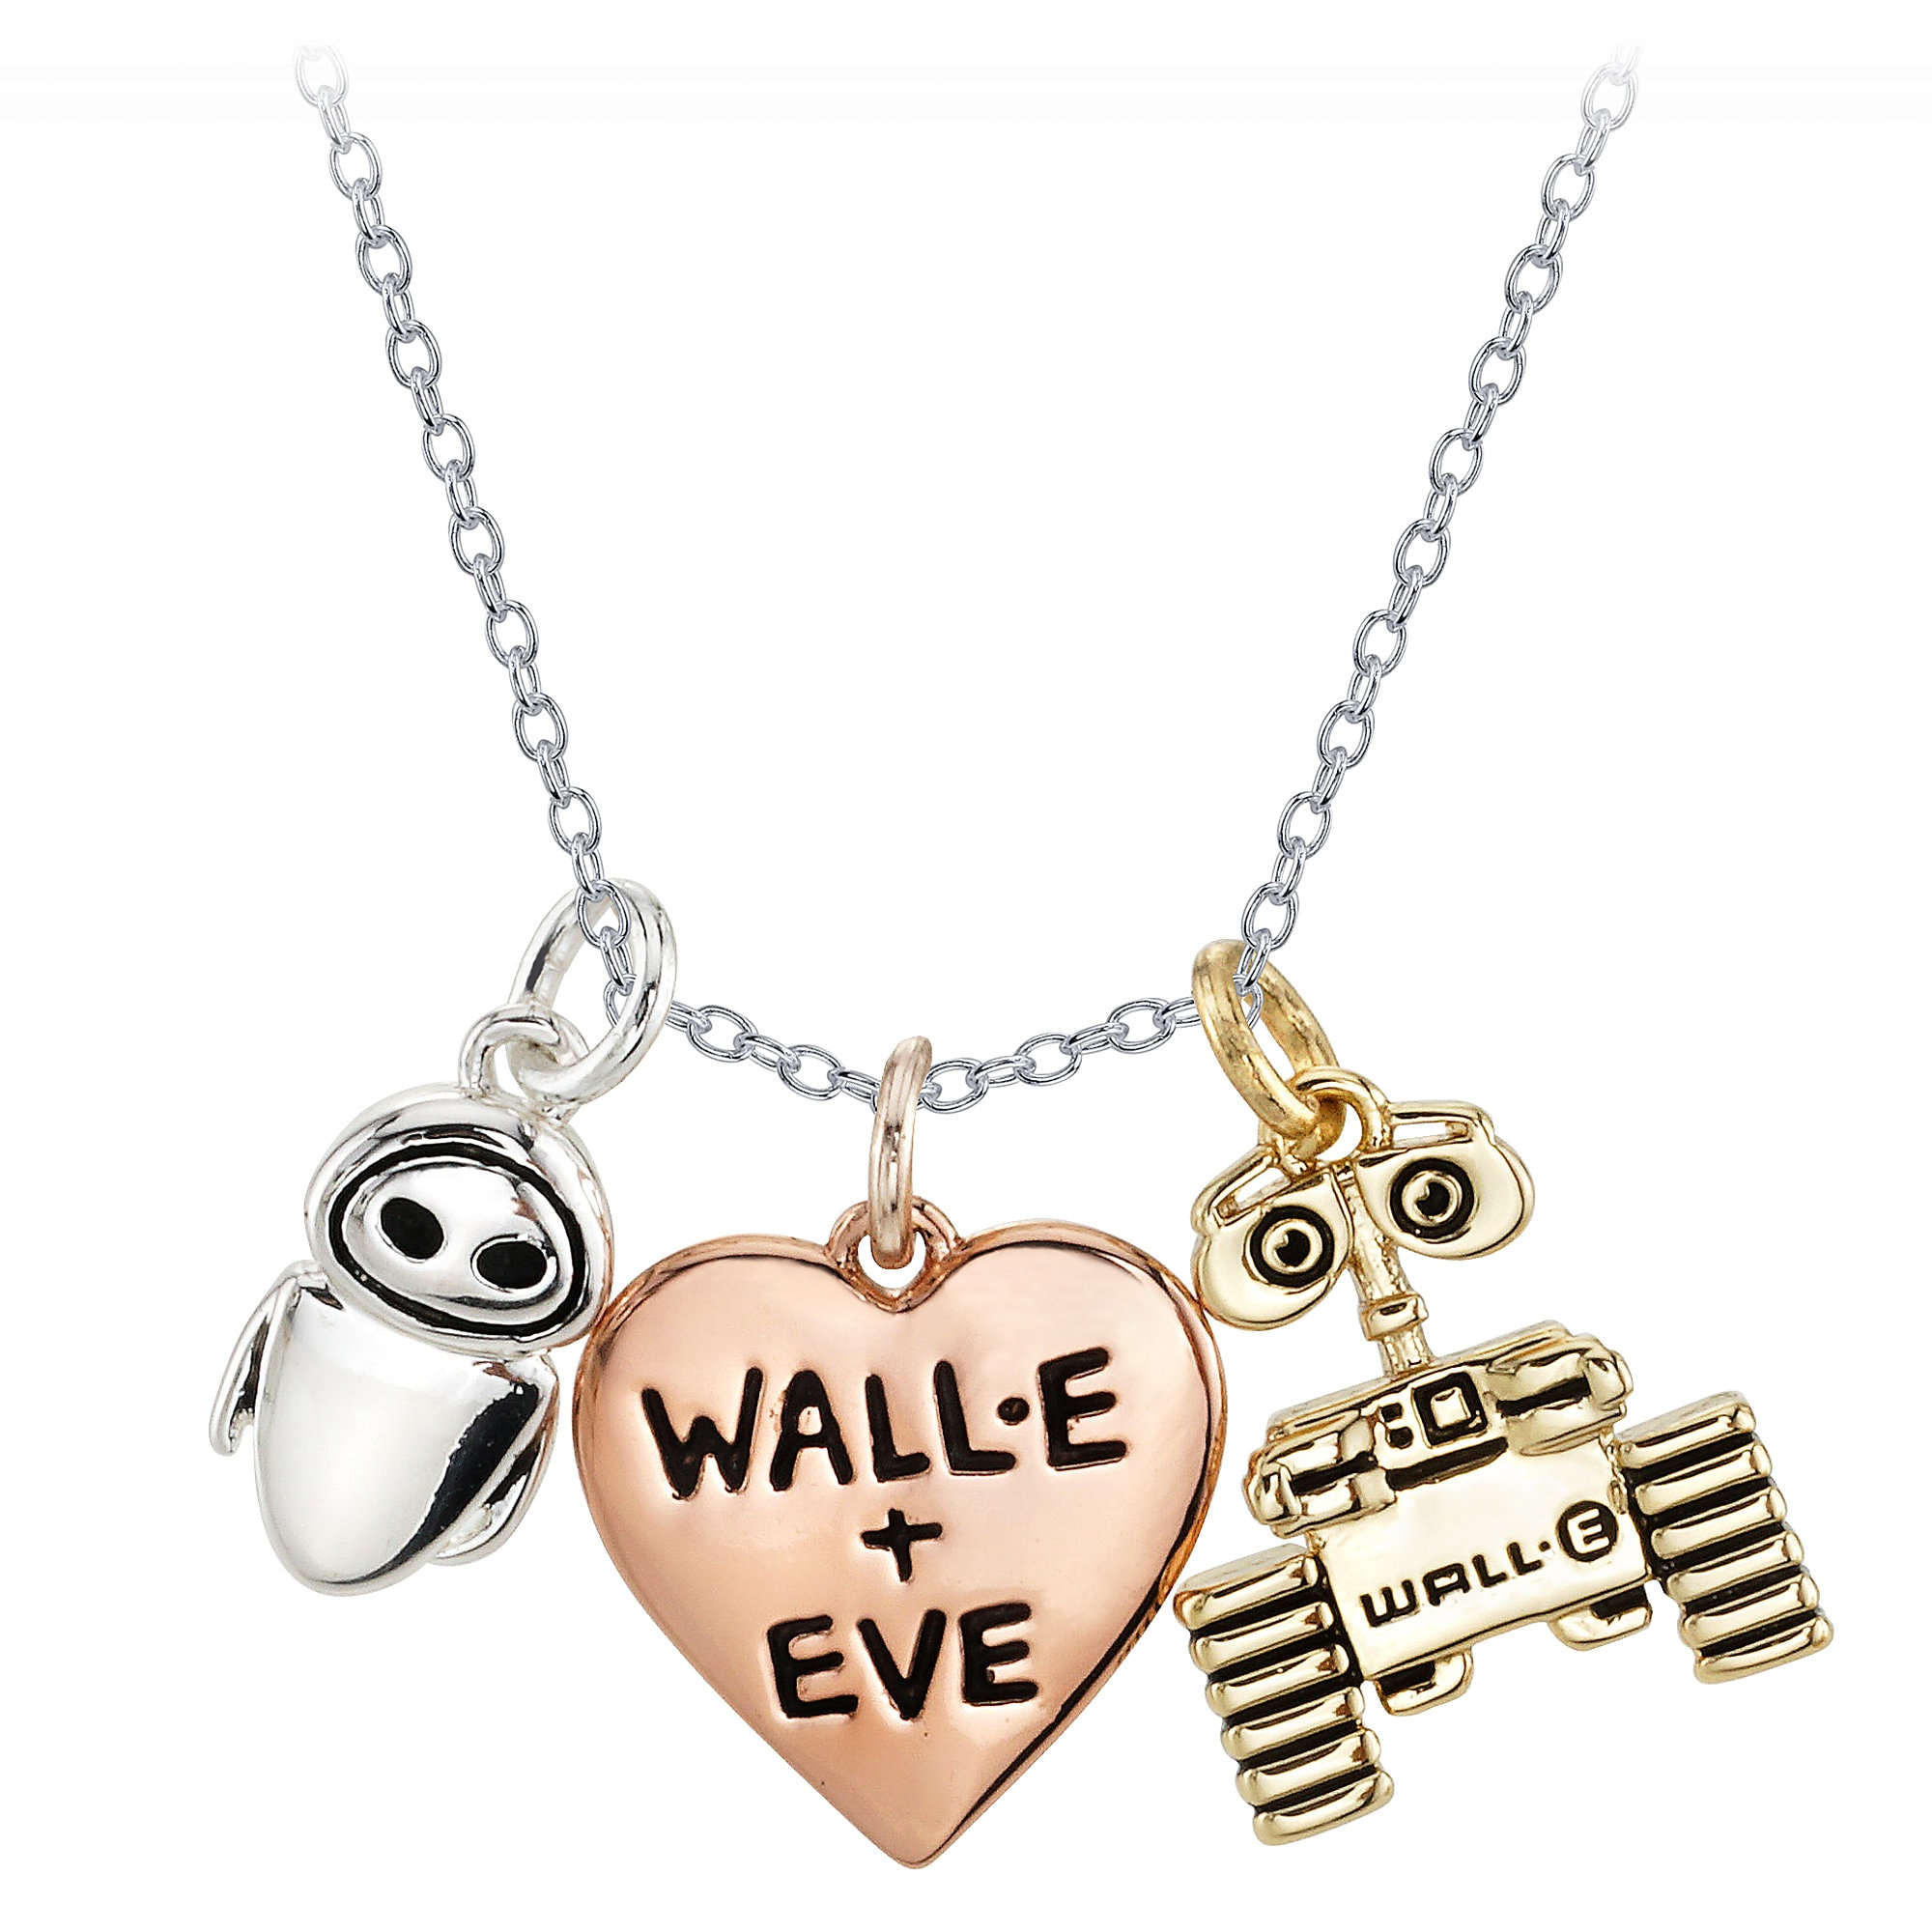 WALL•E and EVE Heart Necklace